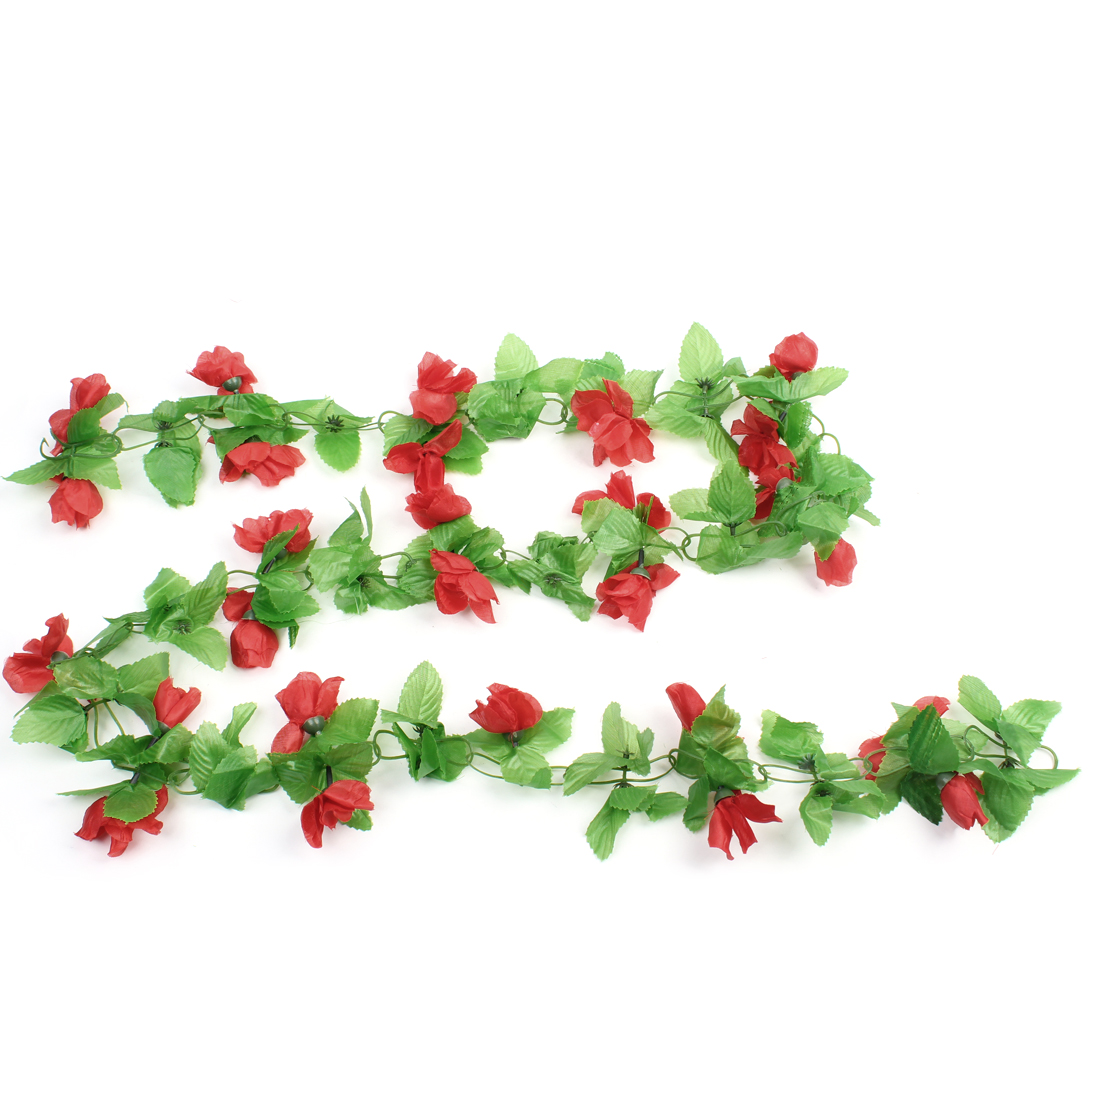 Green Leaf Carmine Rose Plastic Flower Wall Hanging Plant Vine 1.9M